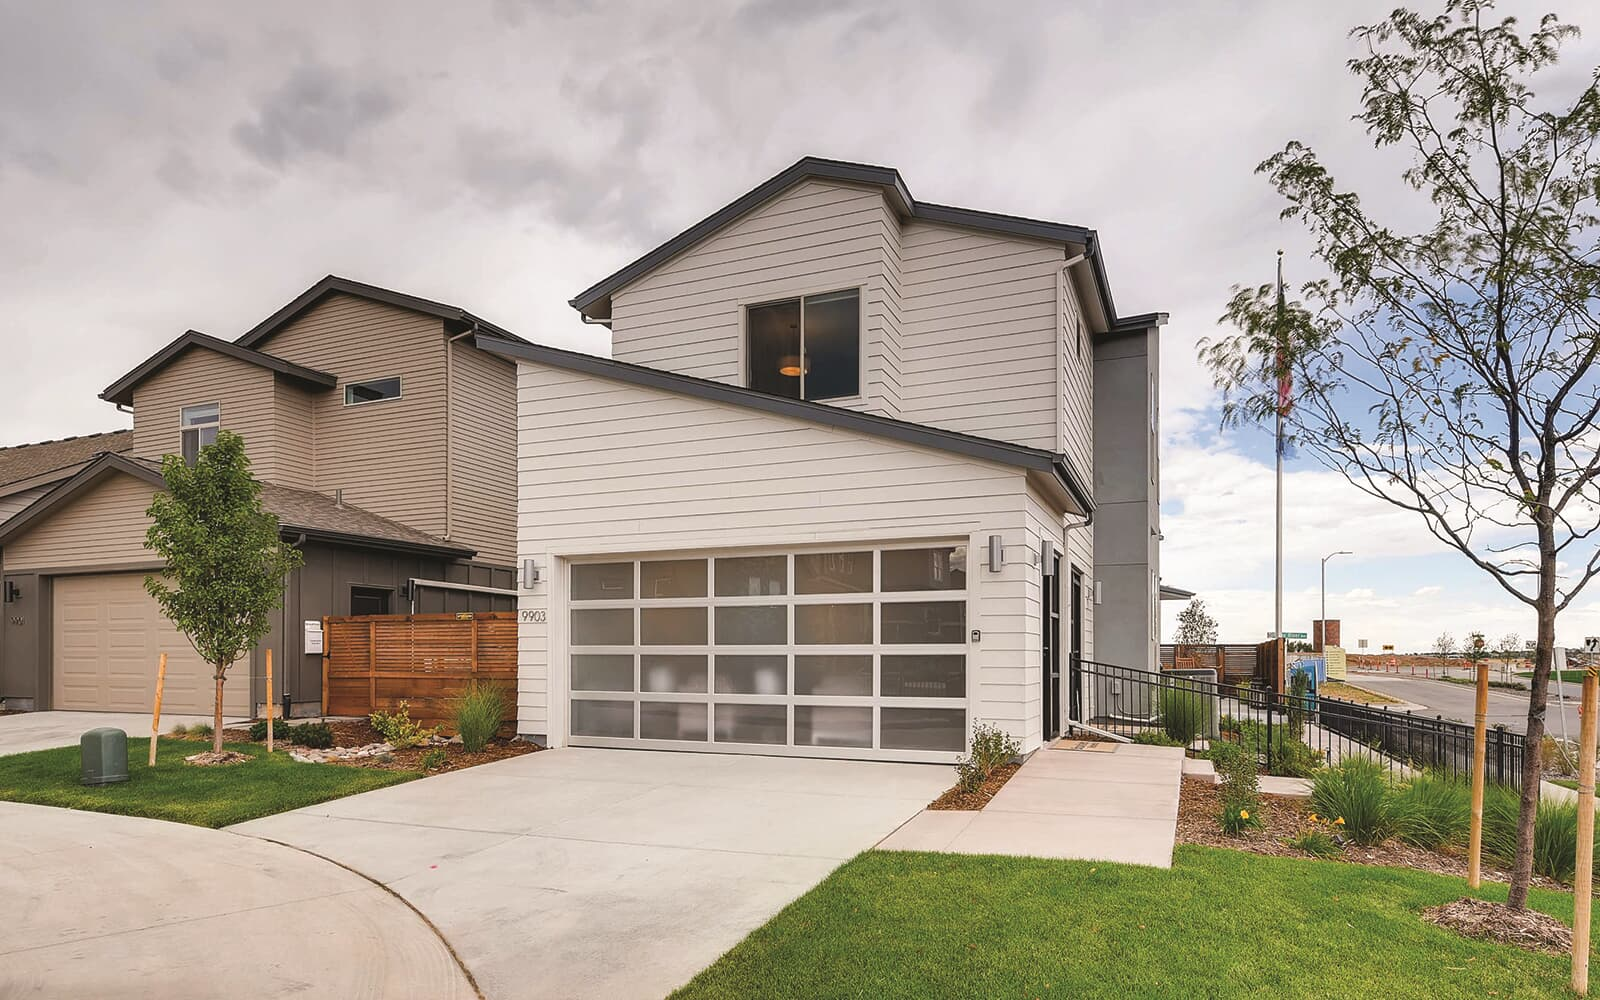 Signature-Four-Model-Exterior-Garage-Sterling-Ranch-Denver-Colorado